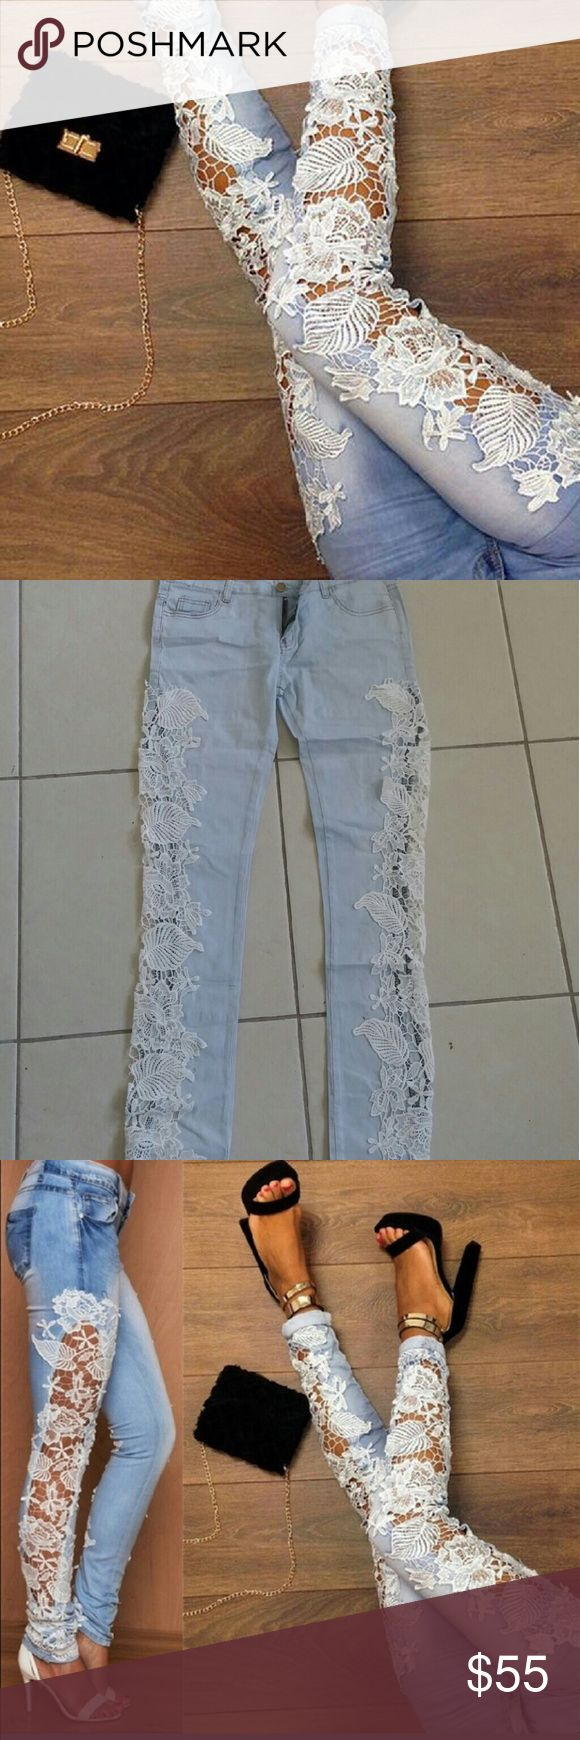 NWOT Gorgeous Lace Jeans Very beautiful floral lace jeans. Stretchy.  S-26in waist,, 31 inseam Jeans Skinny